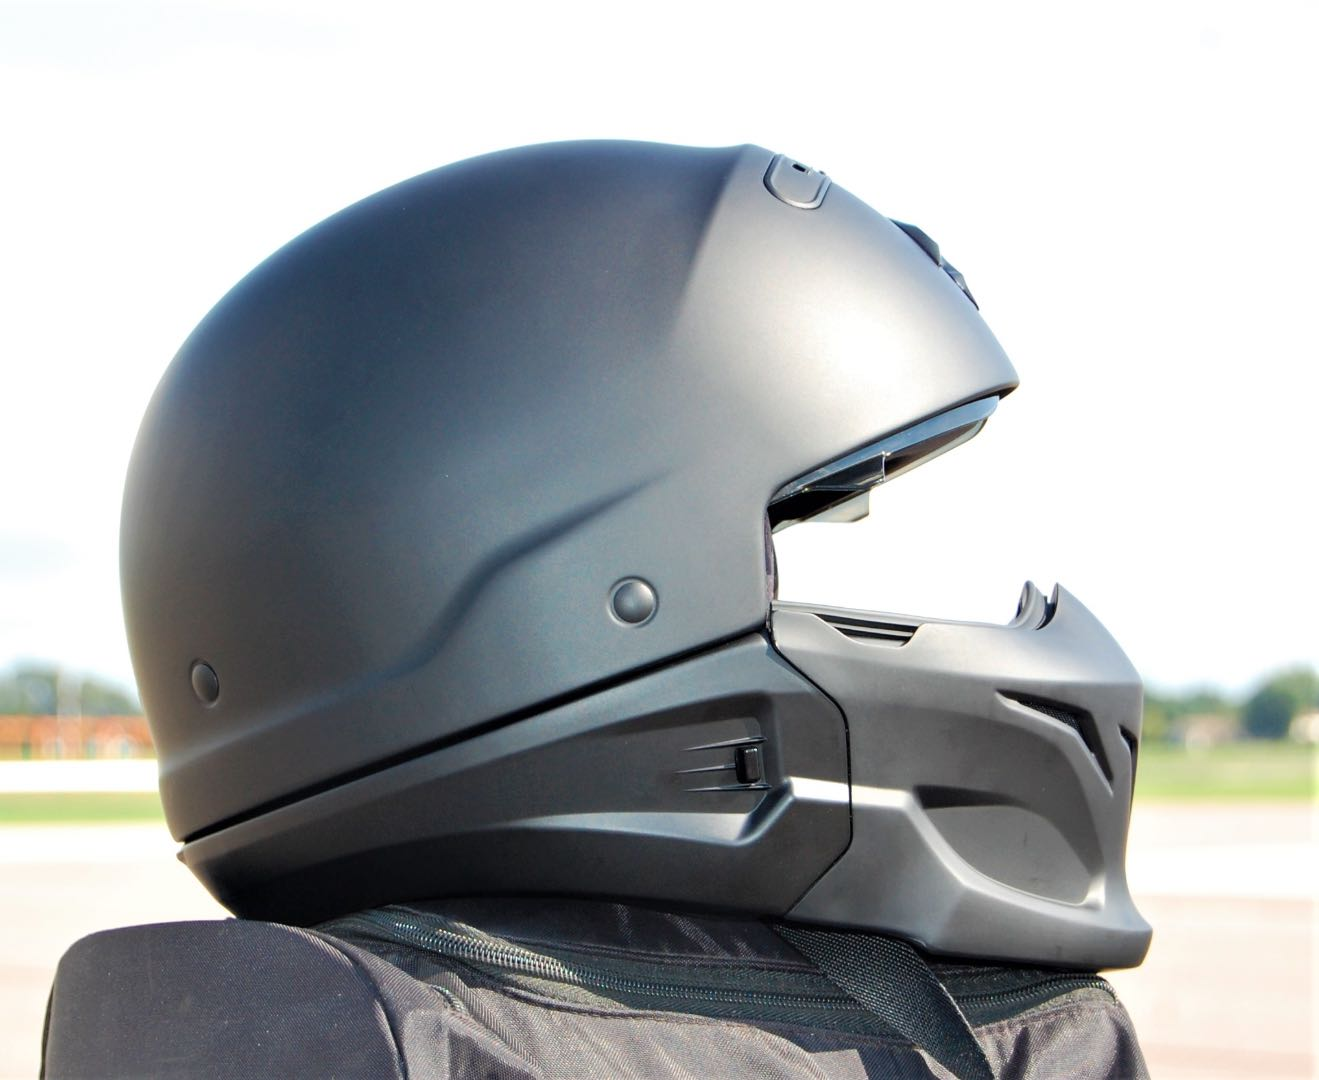 Scorpion Covert 3-in-1 Helmet testing